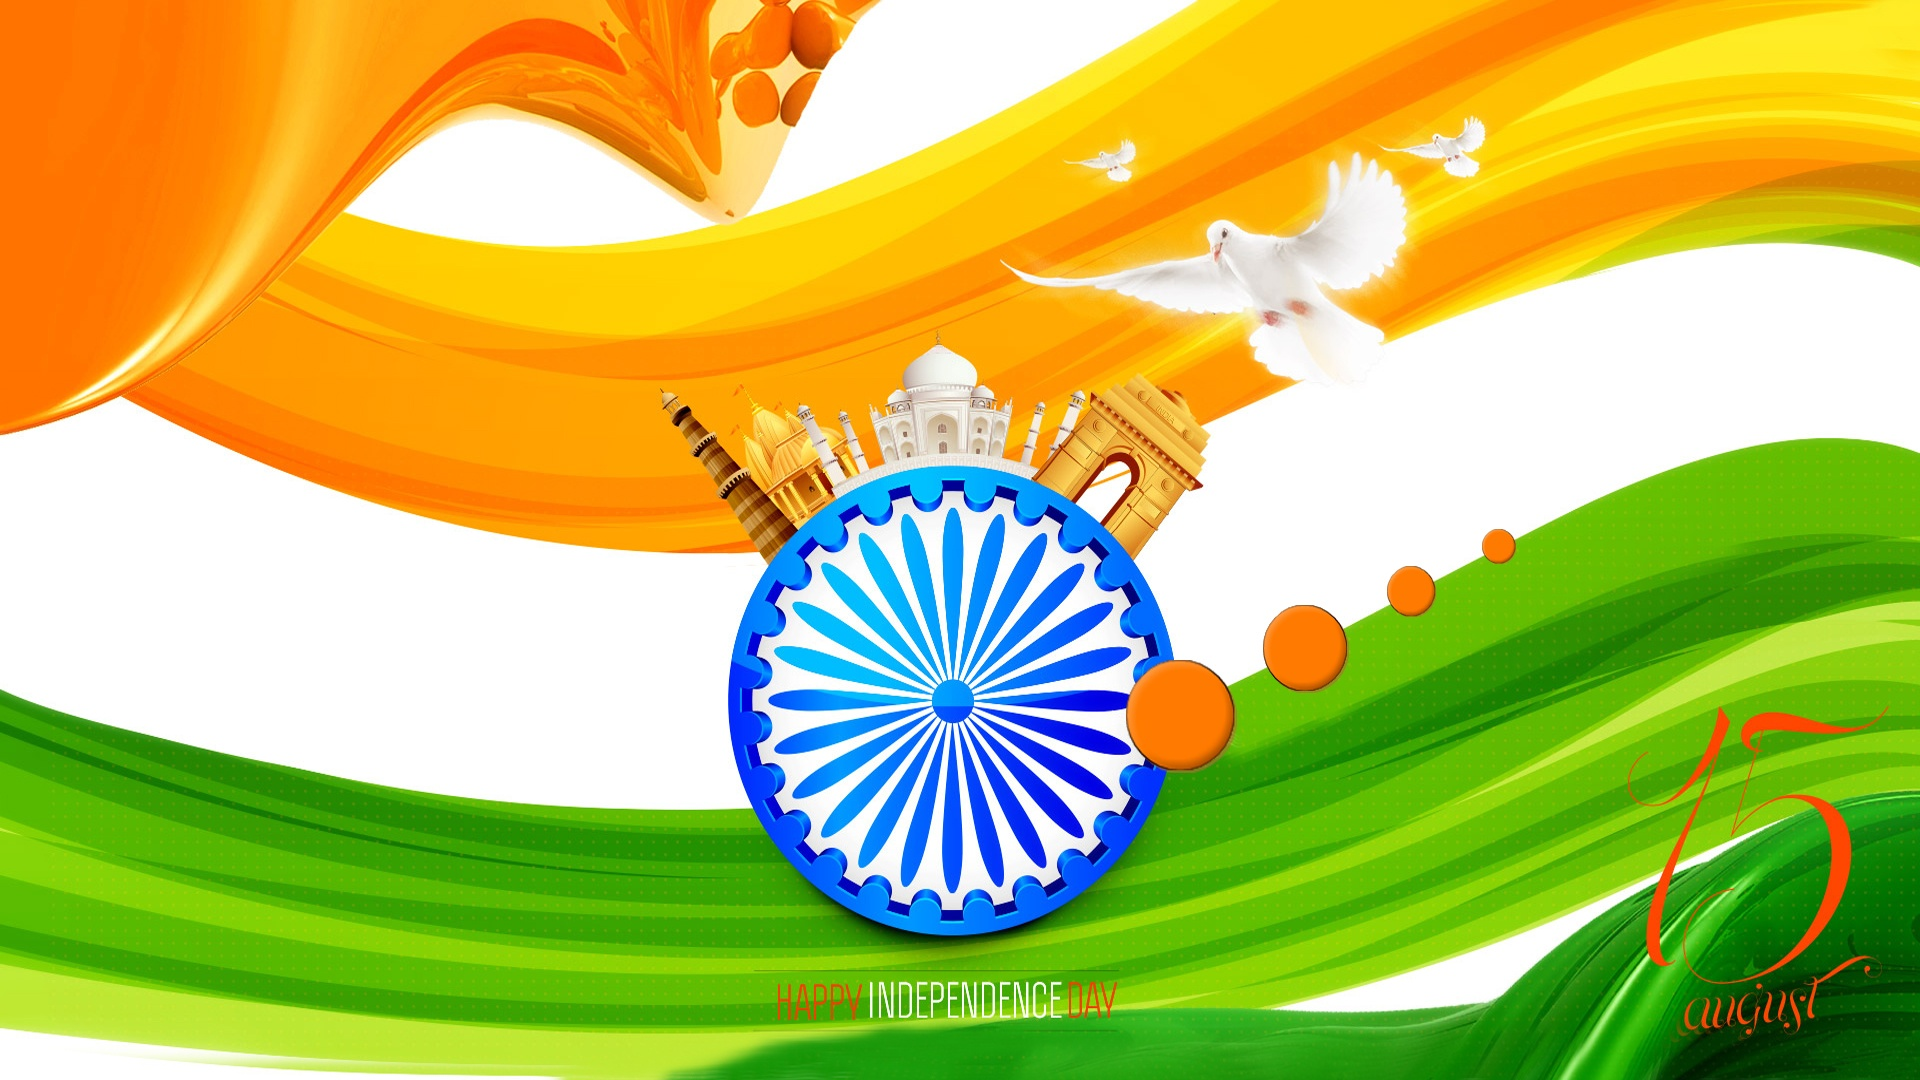 India Flag Hd 1920 X 1080: Indian Flag Independence Day Vande Mataram Wallpapers